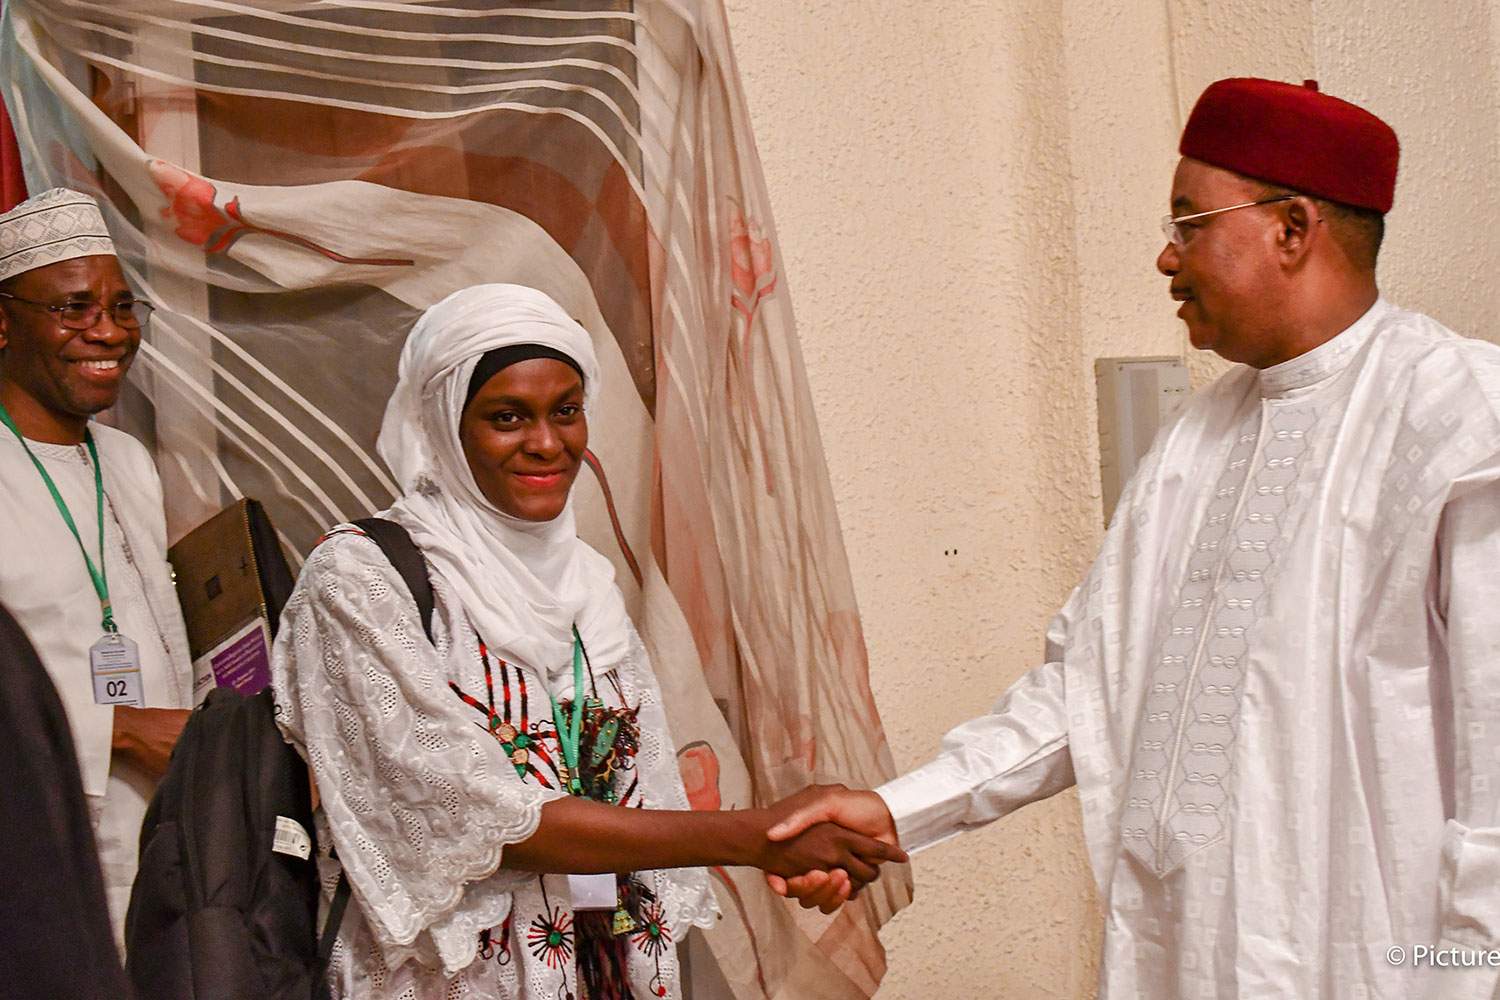 Helping youth directly address their leaders: Mariam Abou Gado, Ouagadougou Partnership Youth Ambassador in Niger, meets with President Issoufou of Niger to discuss recommendations on family planning. The photo shows a smiling Miriam shaking hands with the president. PHOTO courtesy of EtriLabs/Yves Tamomo